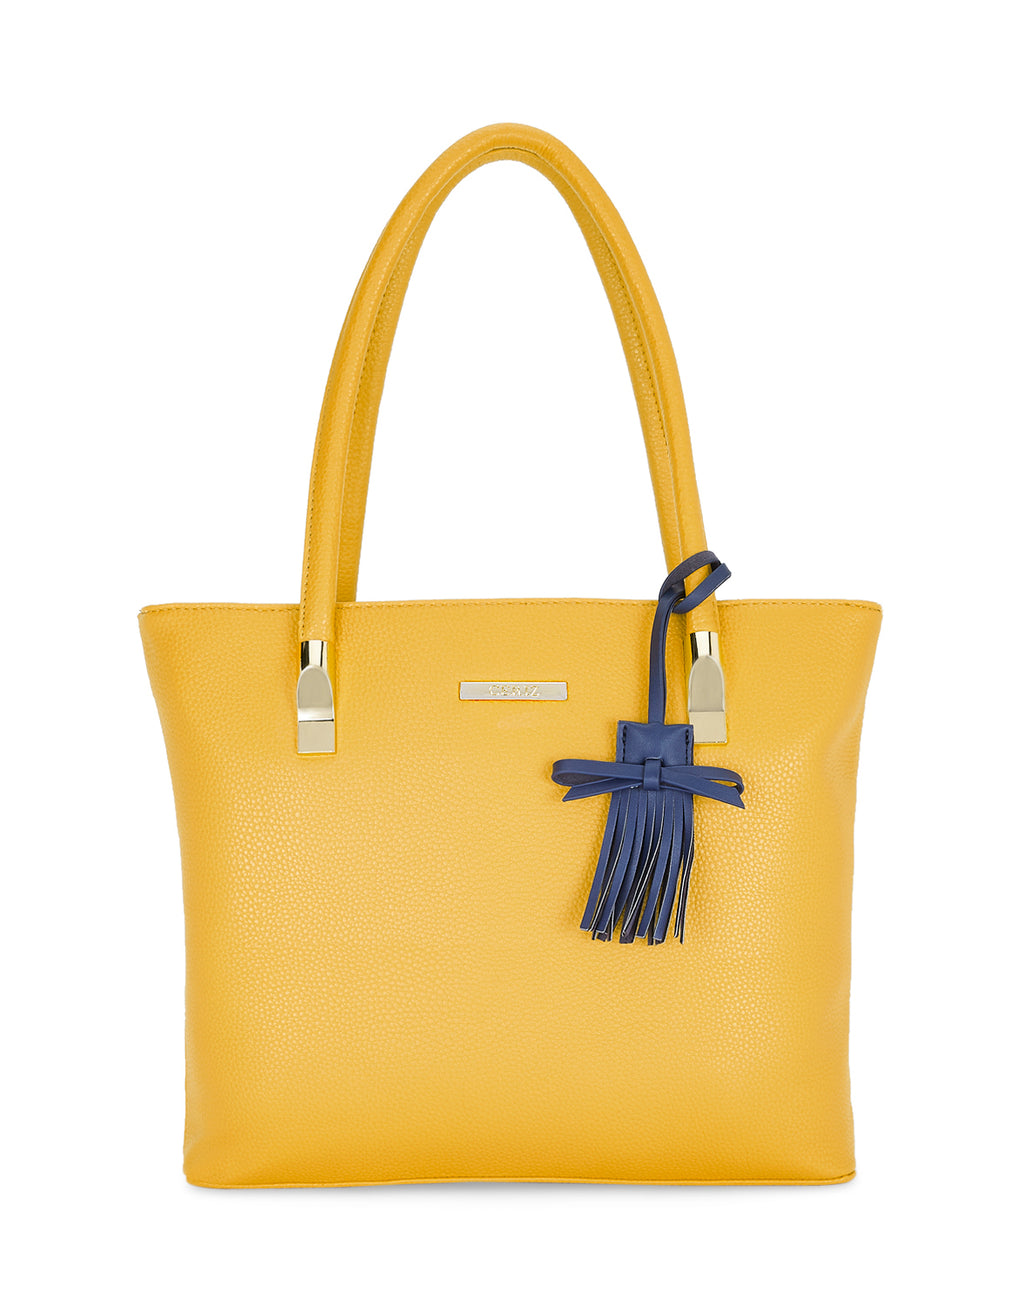 Aliena Tote Yellow Bag